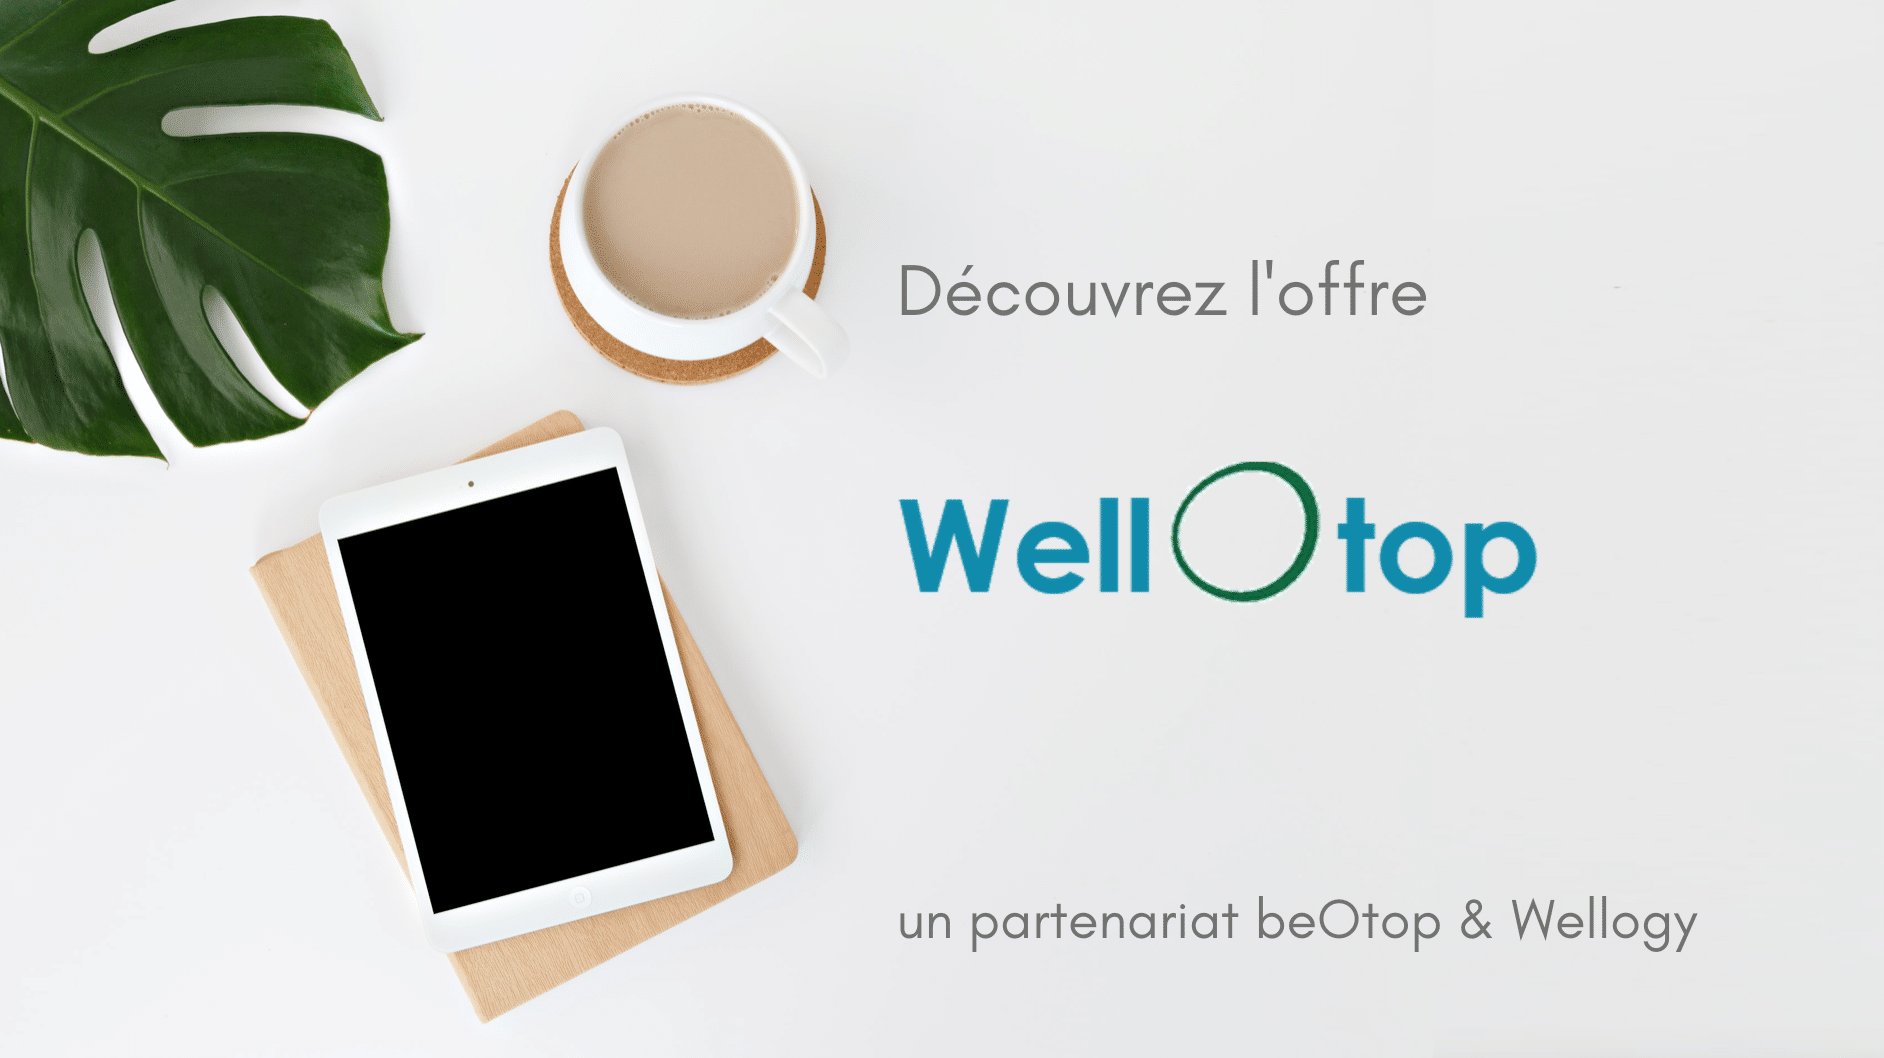 Offre WellOtop